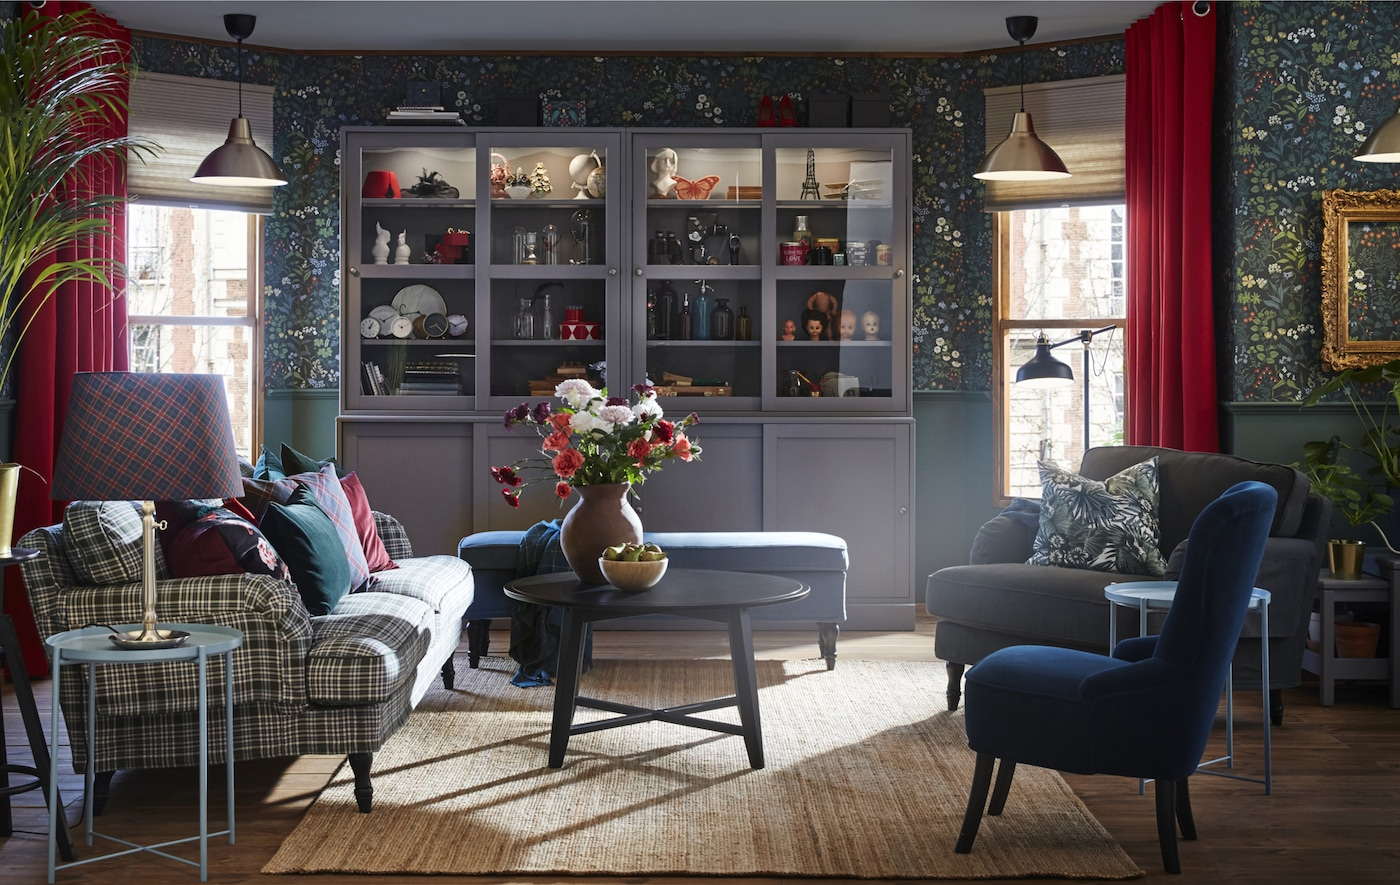 Picture of a living room with sofas, chairs, side tables, floral walls and a large glass-fronted cabinet.